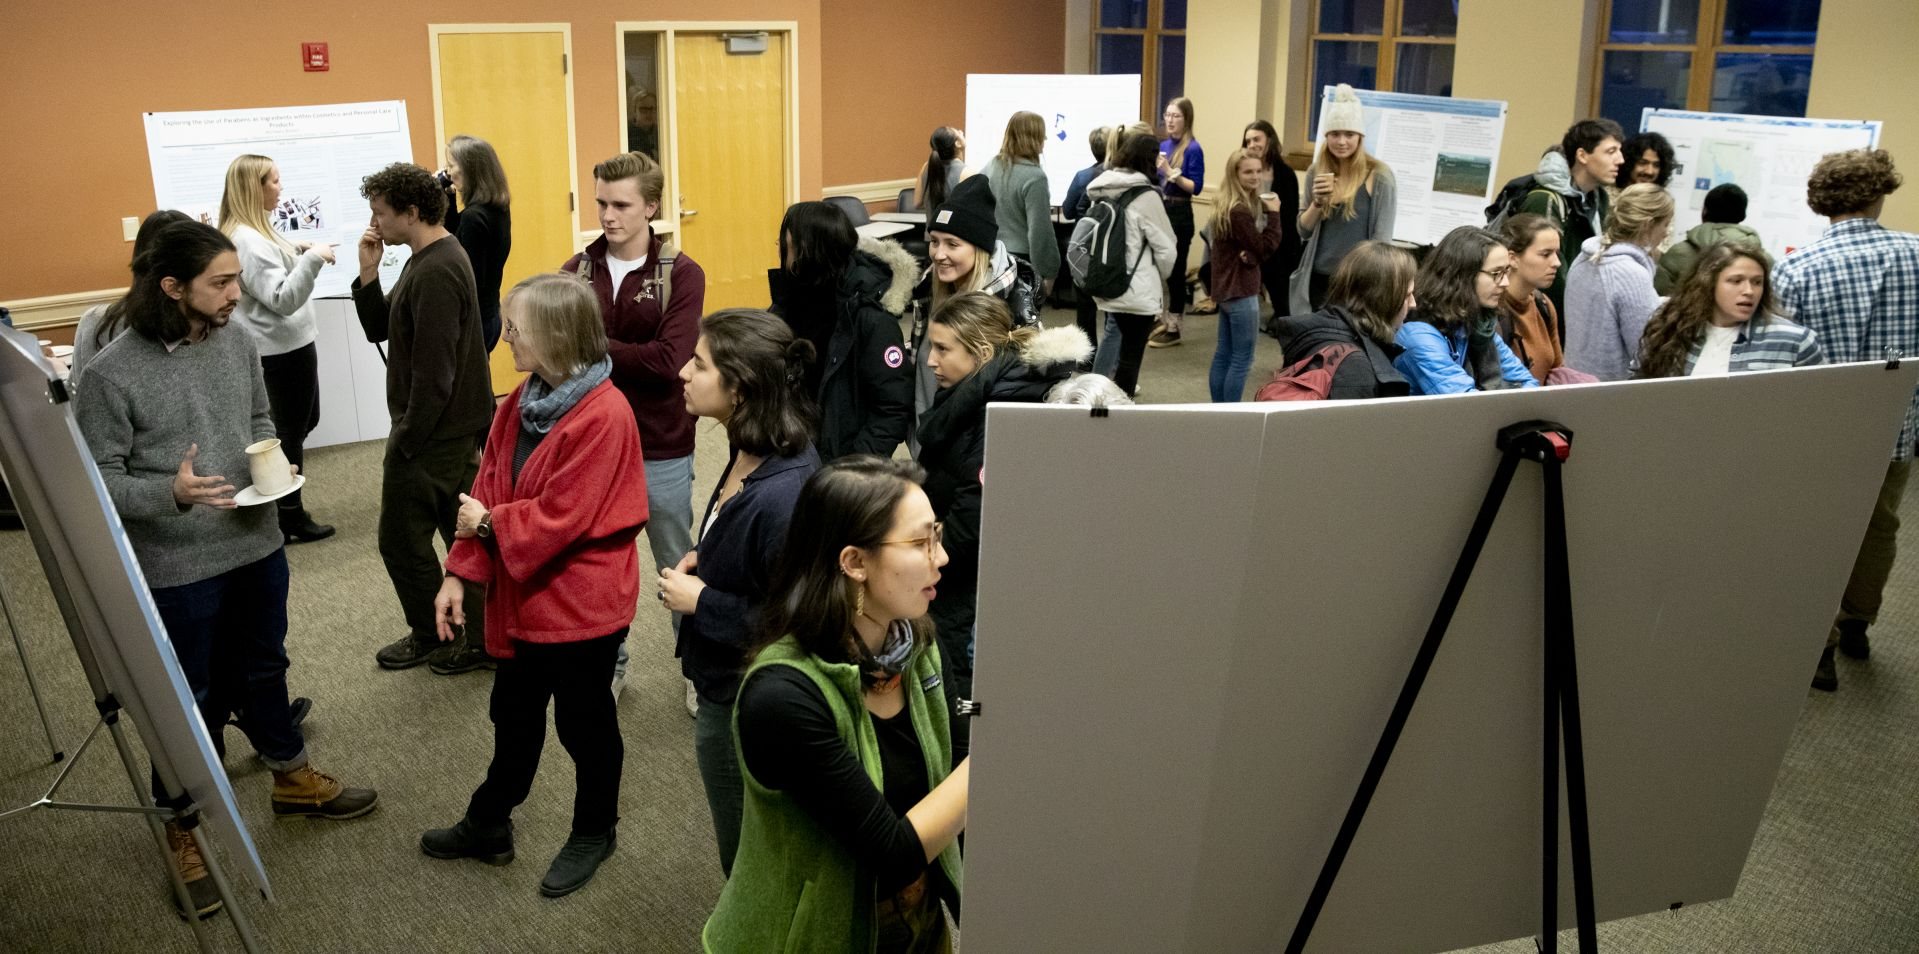 In a Hedge Hall classroom filled with environmental studies posters, Costlow speaks with Tanner Stallbaumer '20 of New York City about his research on early effects of Russian influence in the Aral Sea Basin. (Phyllis Graber Jensen/Bates College)